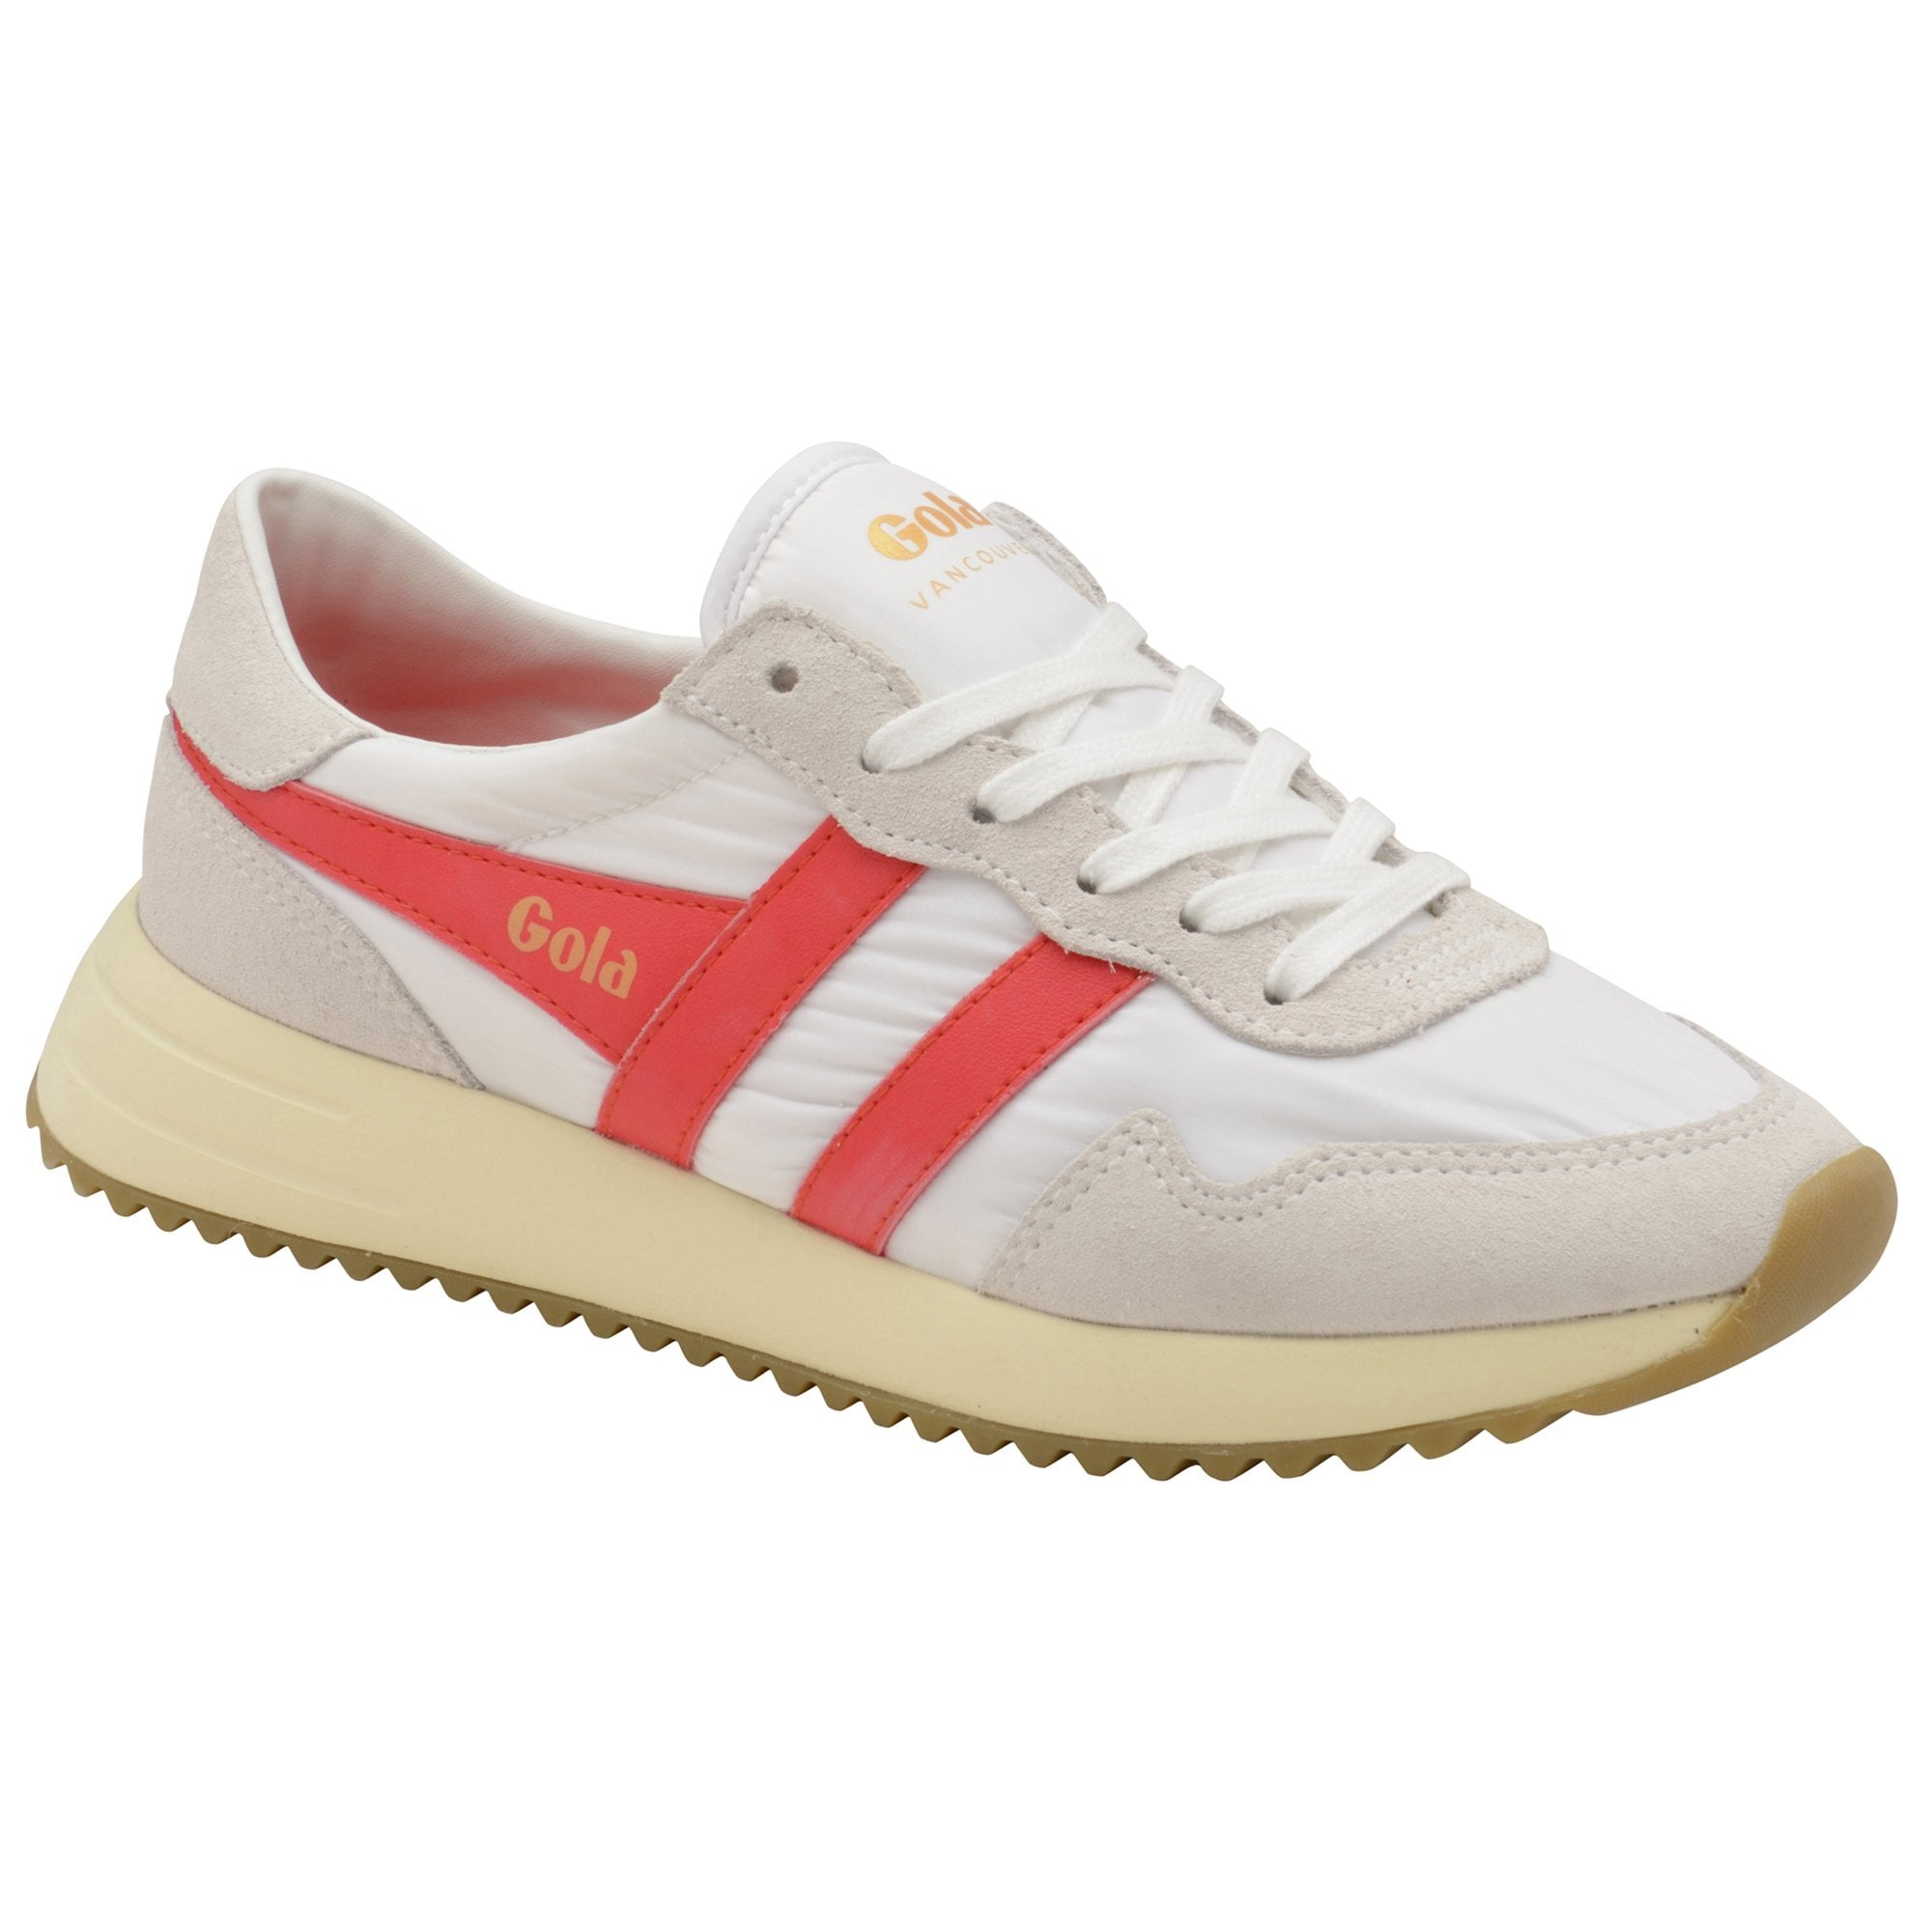 Buy Gola womens Vancouver trainers in